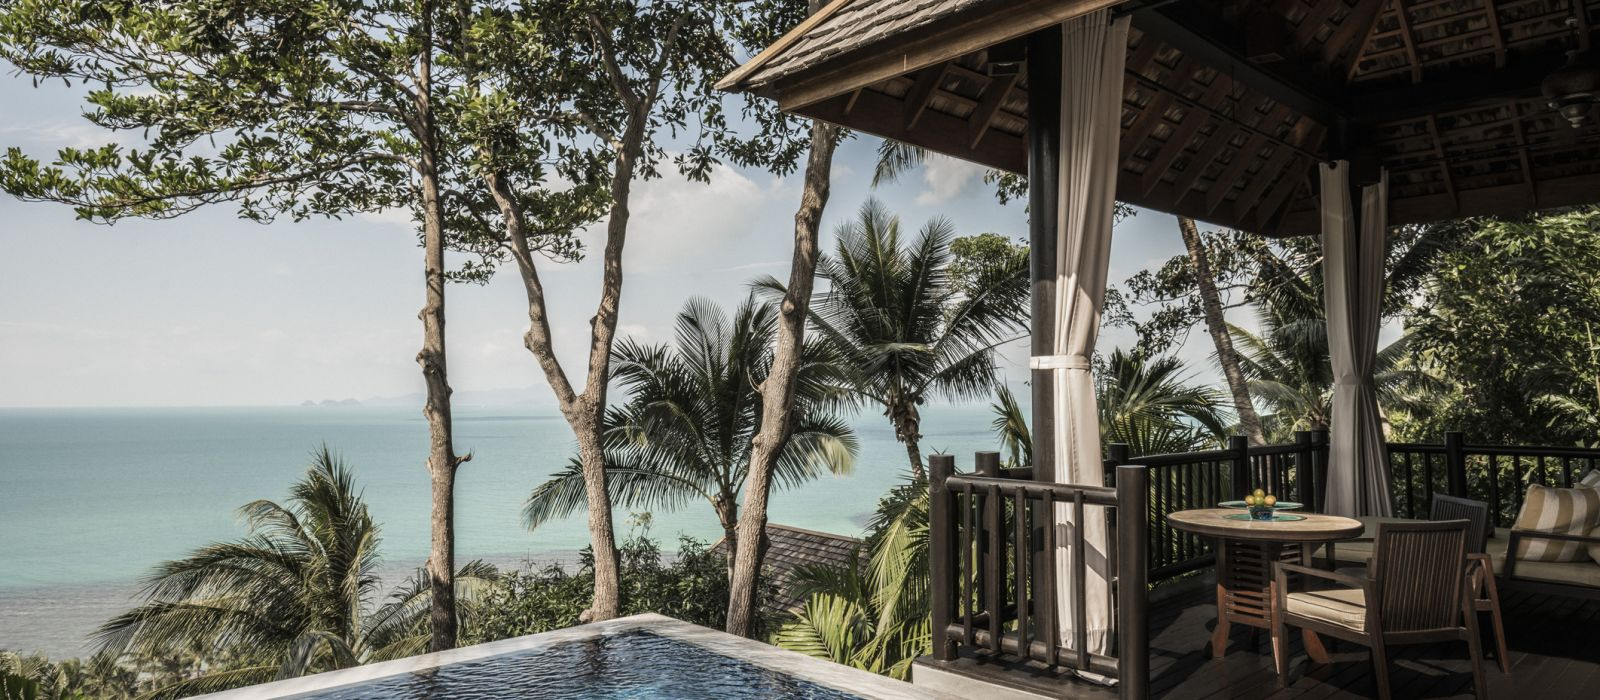 Hotel Four Seasons Koh Samui Thailand